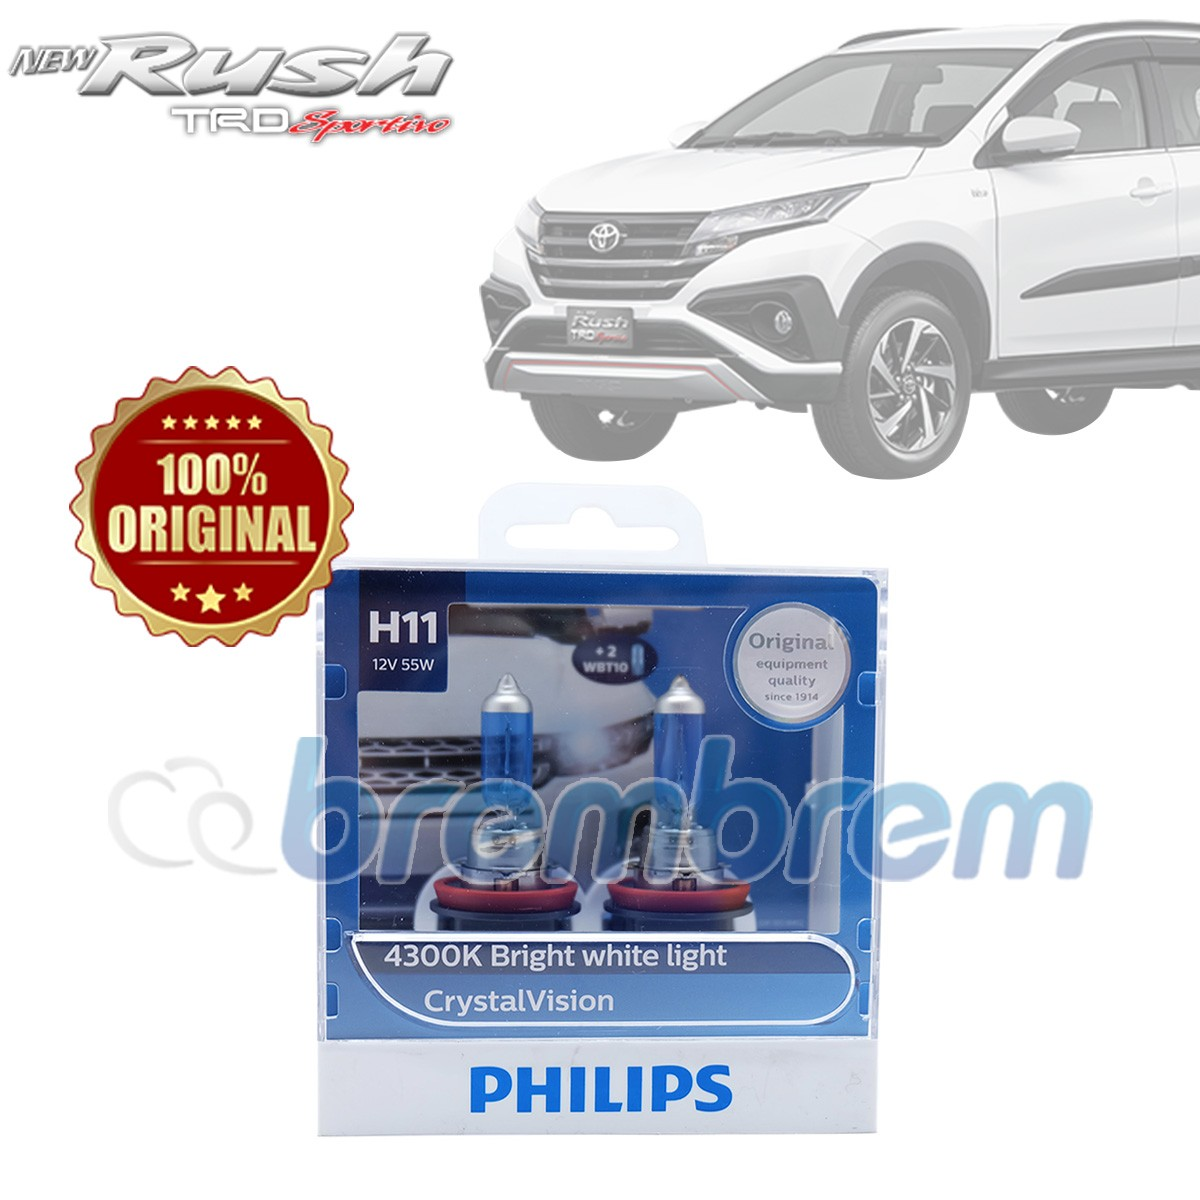 PHILIPS CRYSTAL VISION H11 (4300K) - LAMPU HALOGEN TOYOTA ALL NEW RUSH